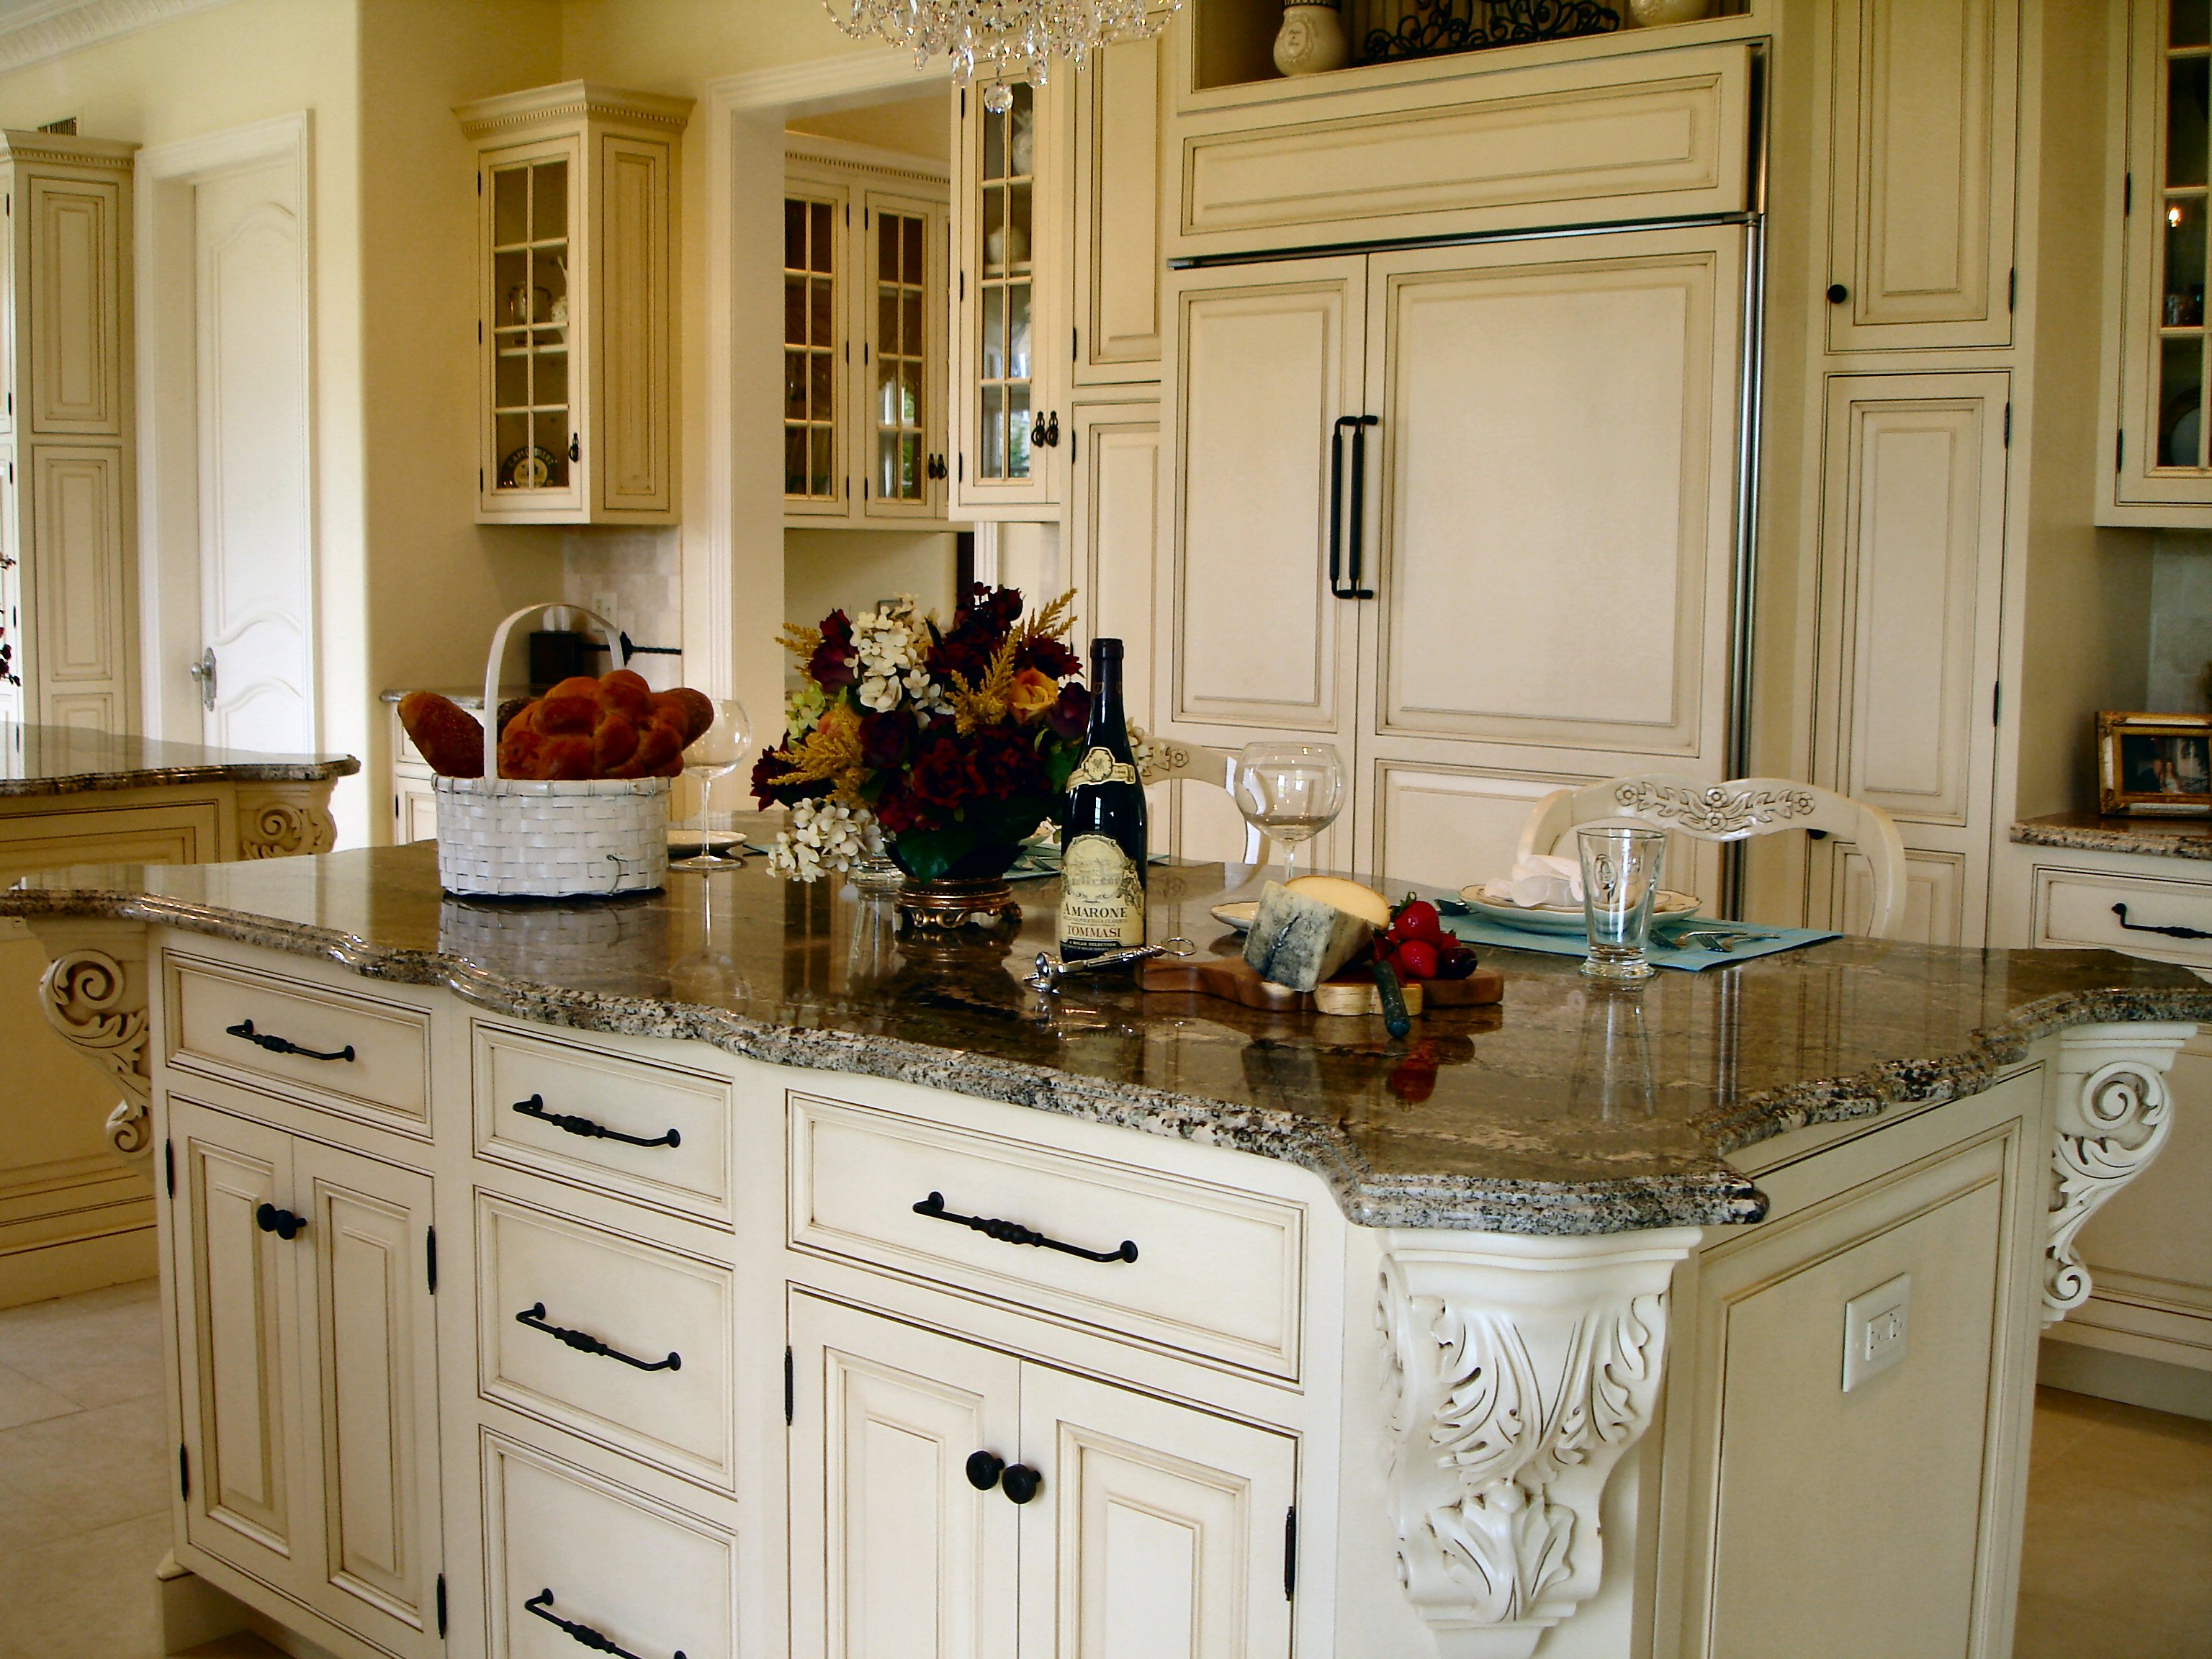 decorating kitchen islands monmouth county kitchen remodeling ideas to inspire you 11347